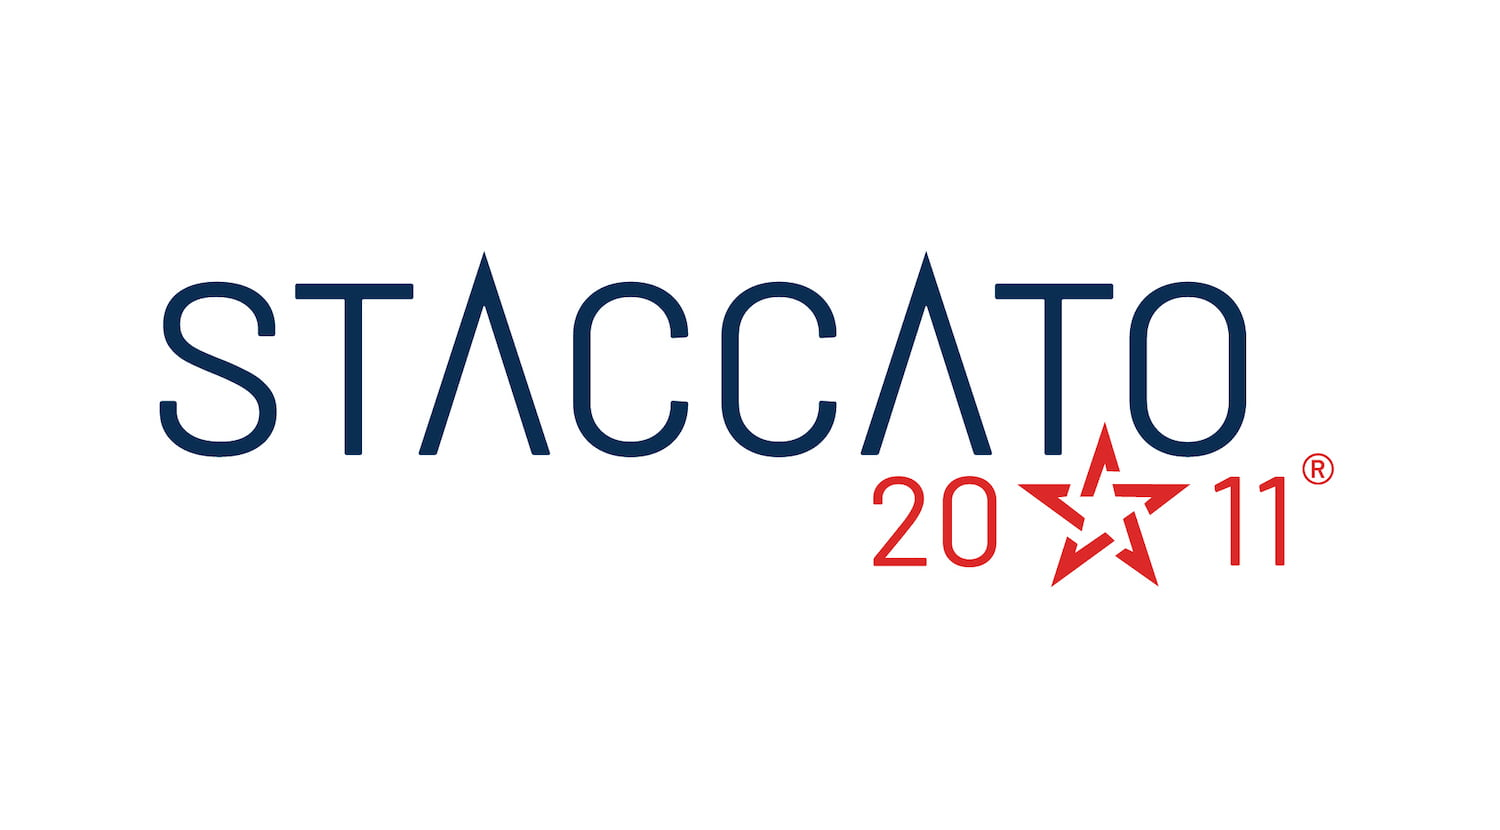 STI Firearms, LLC Announces Company Name Change to Staccato